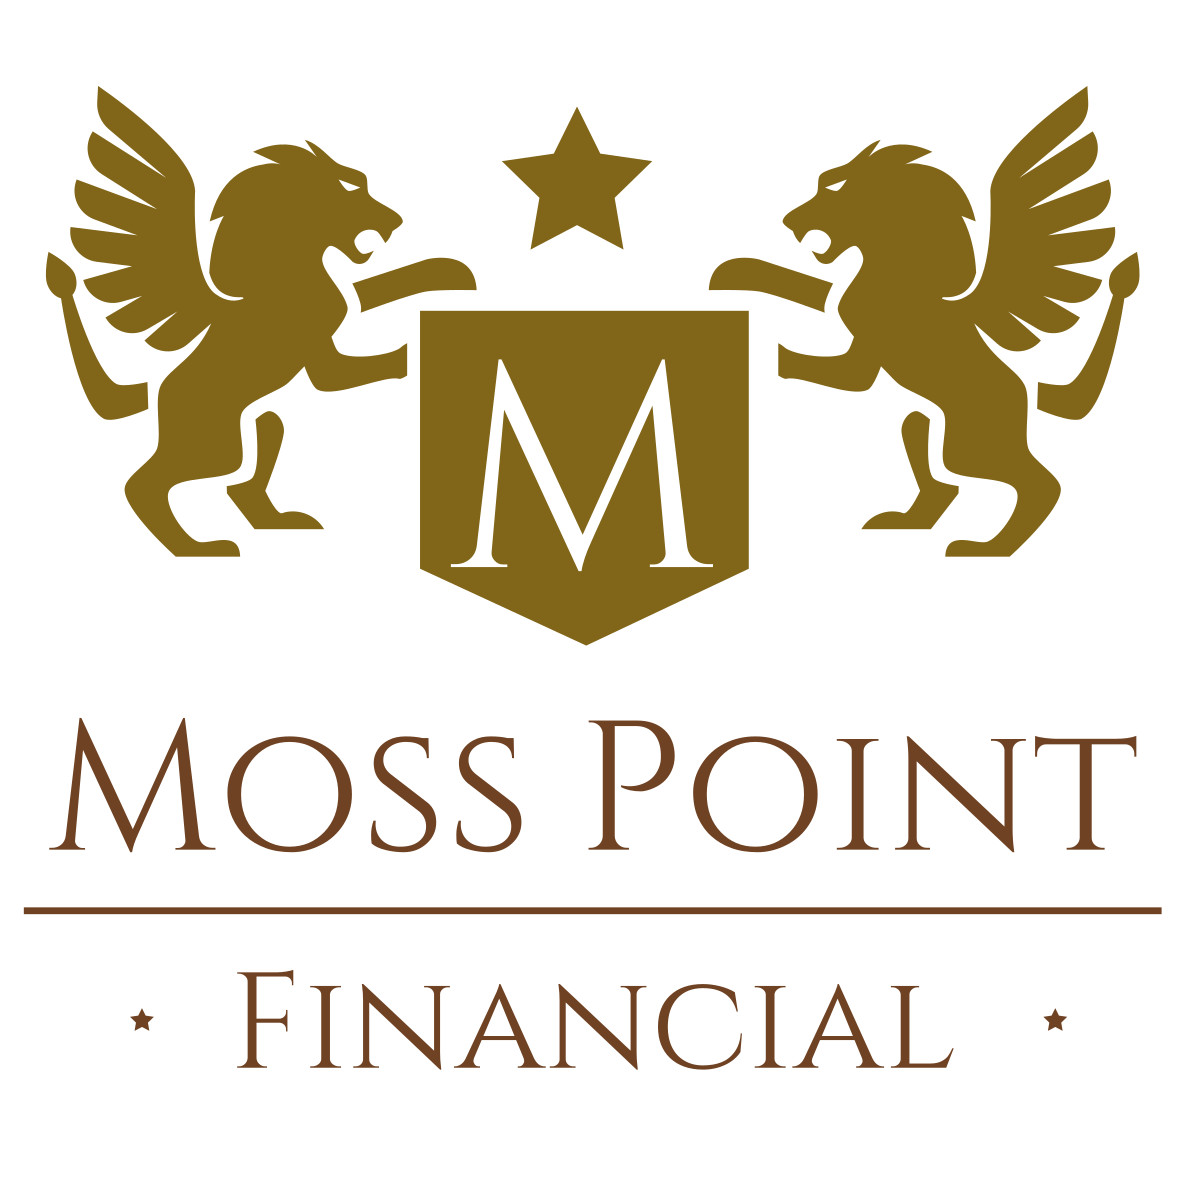 Head of Moss Point Financial, J.D. Perry of Baton Rouge, Announces Partnership With ITM 21st To Revolutionize Back-Office Support